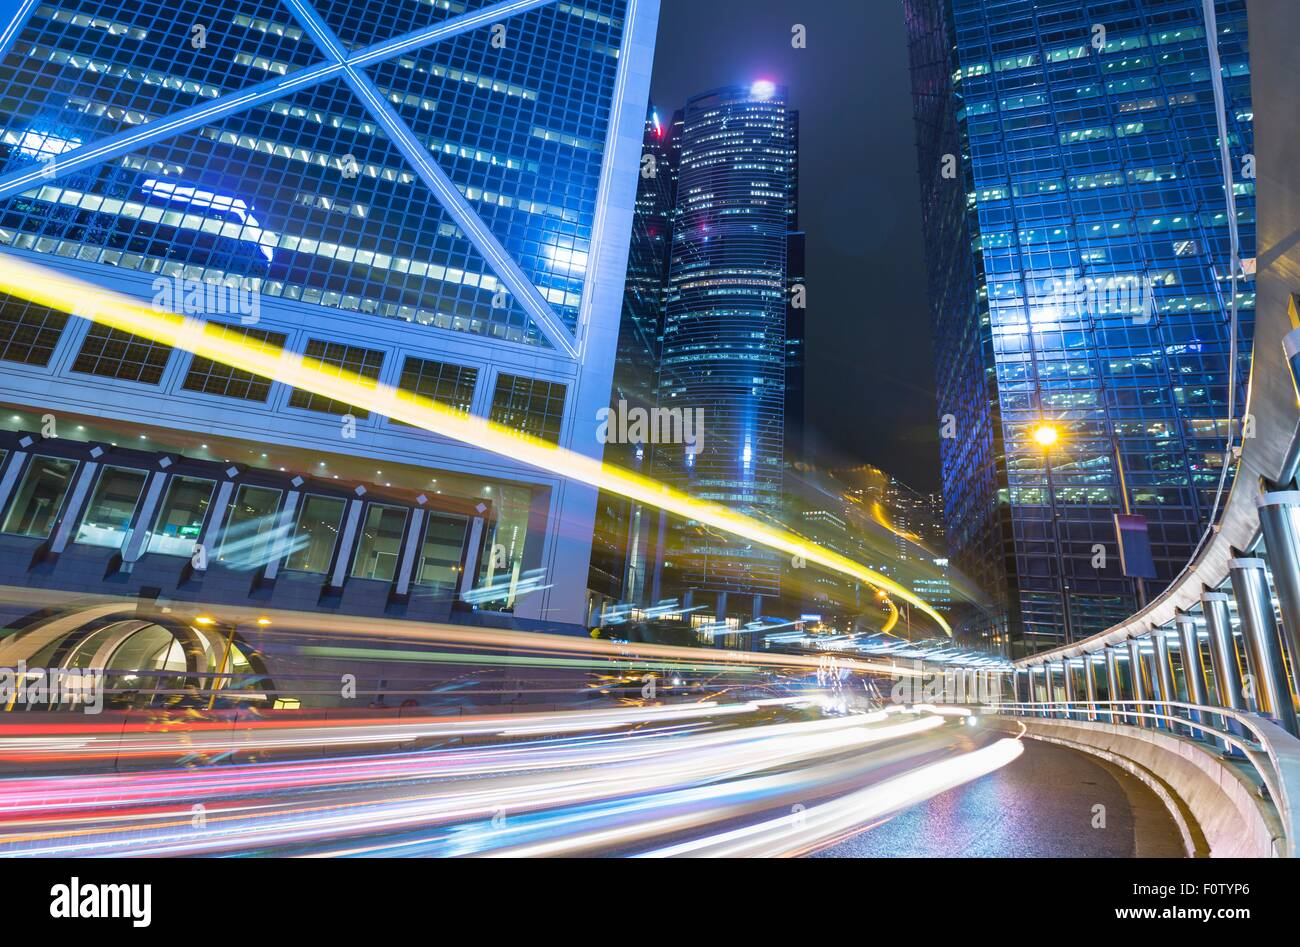 Hong Kong financial district, Hong Kong, China - Stock Image